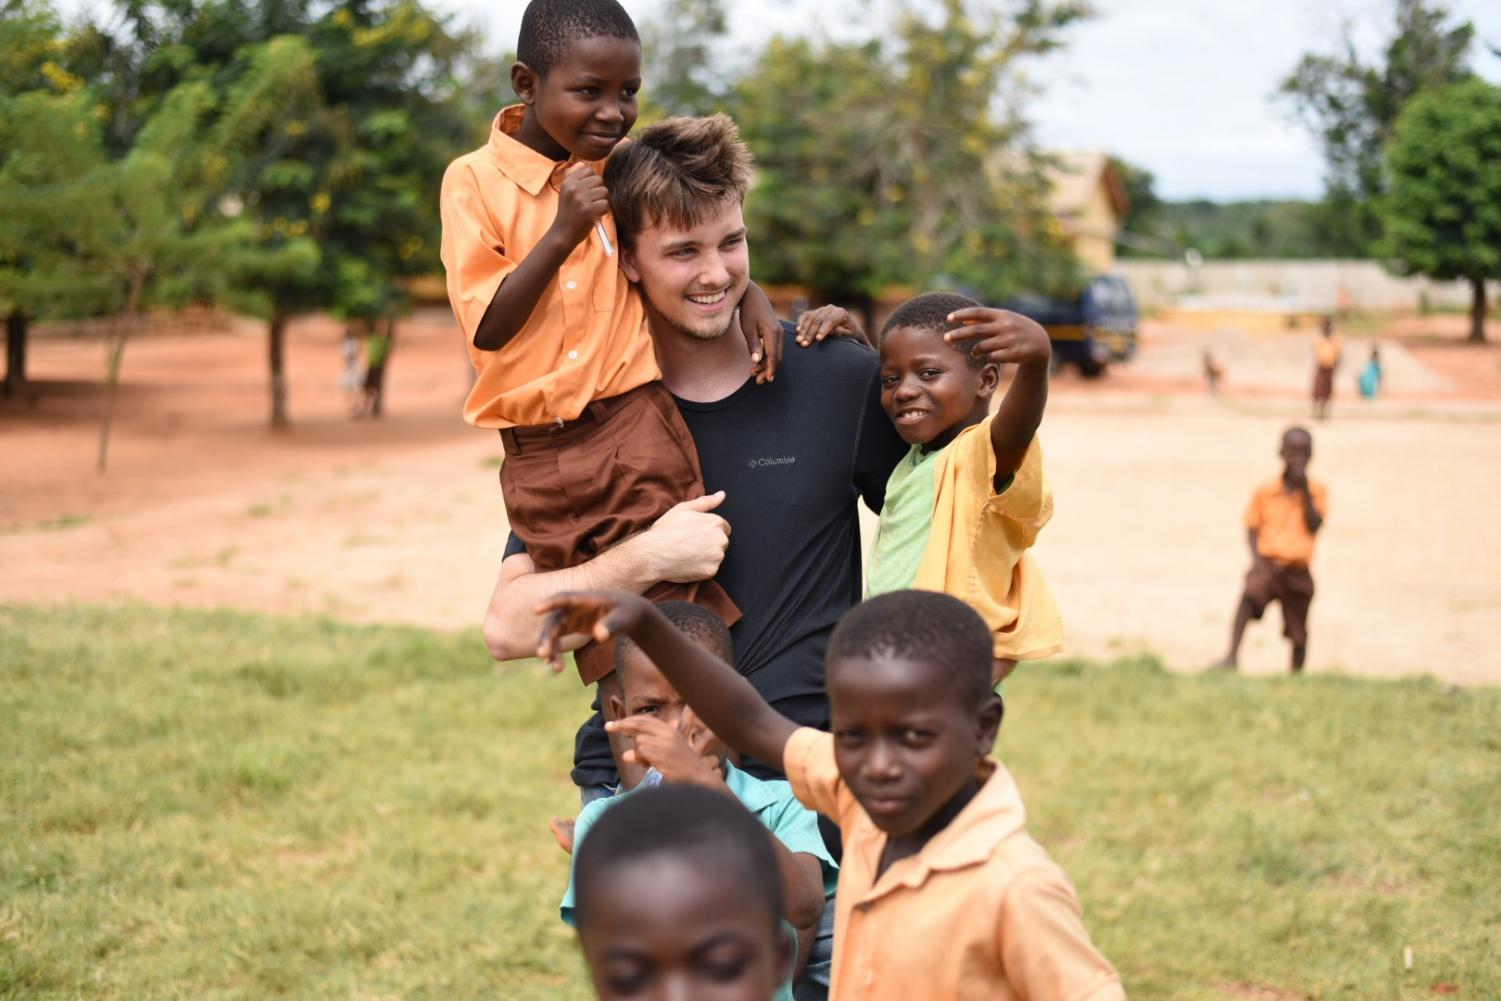 UW Oshkosh journalism radio/TV/film and public relations student Ryan Taylor gets to know the local kids while studying abroad.